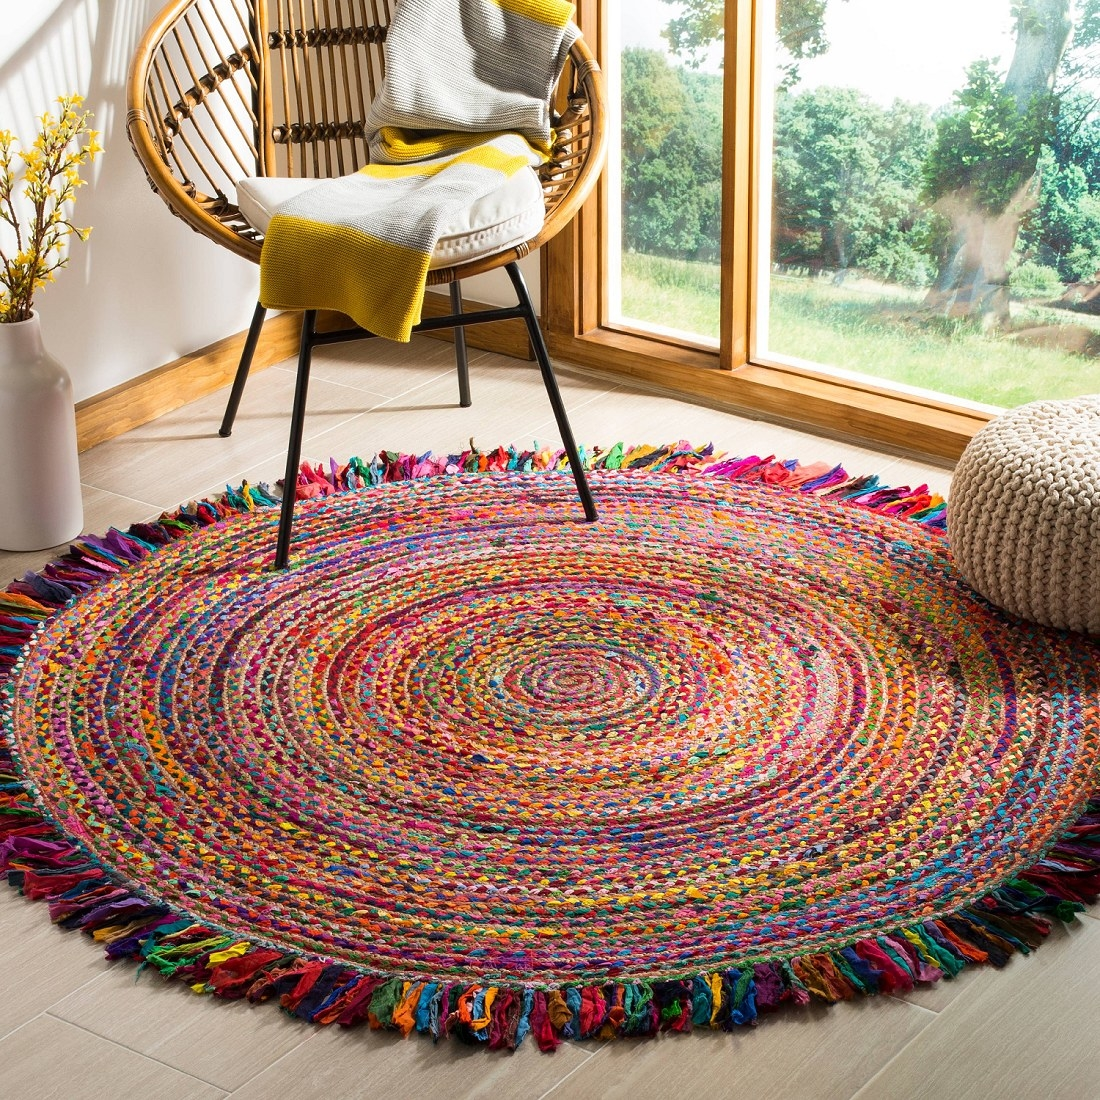 The rug placed in a living room